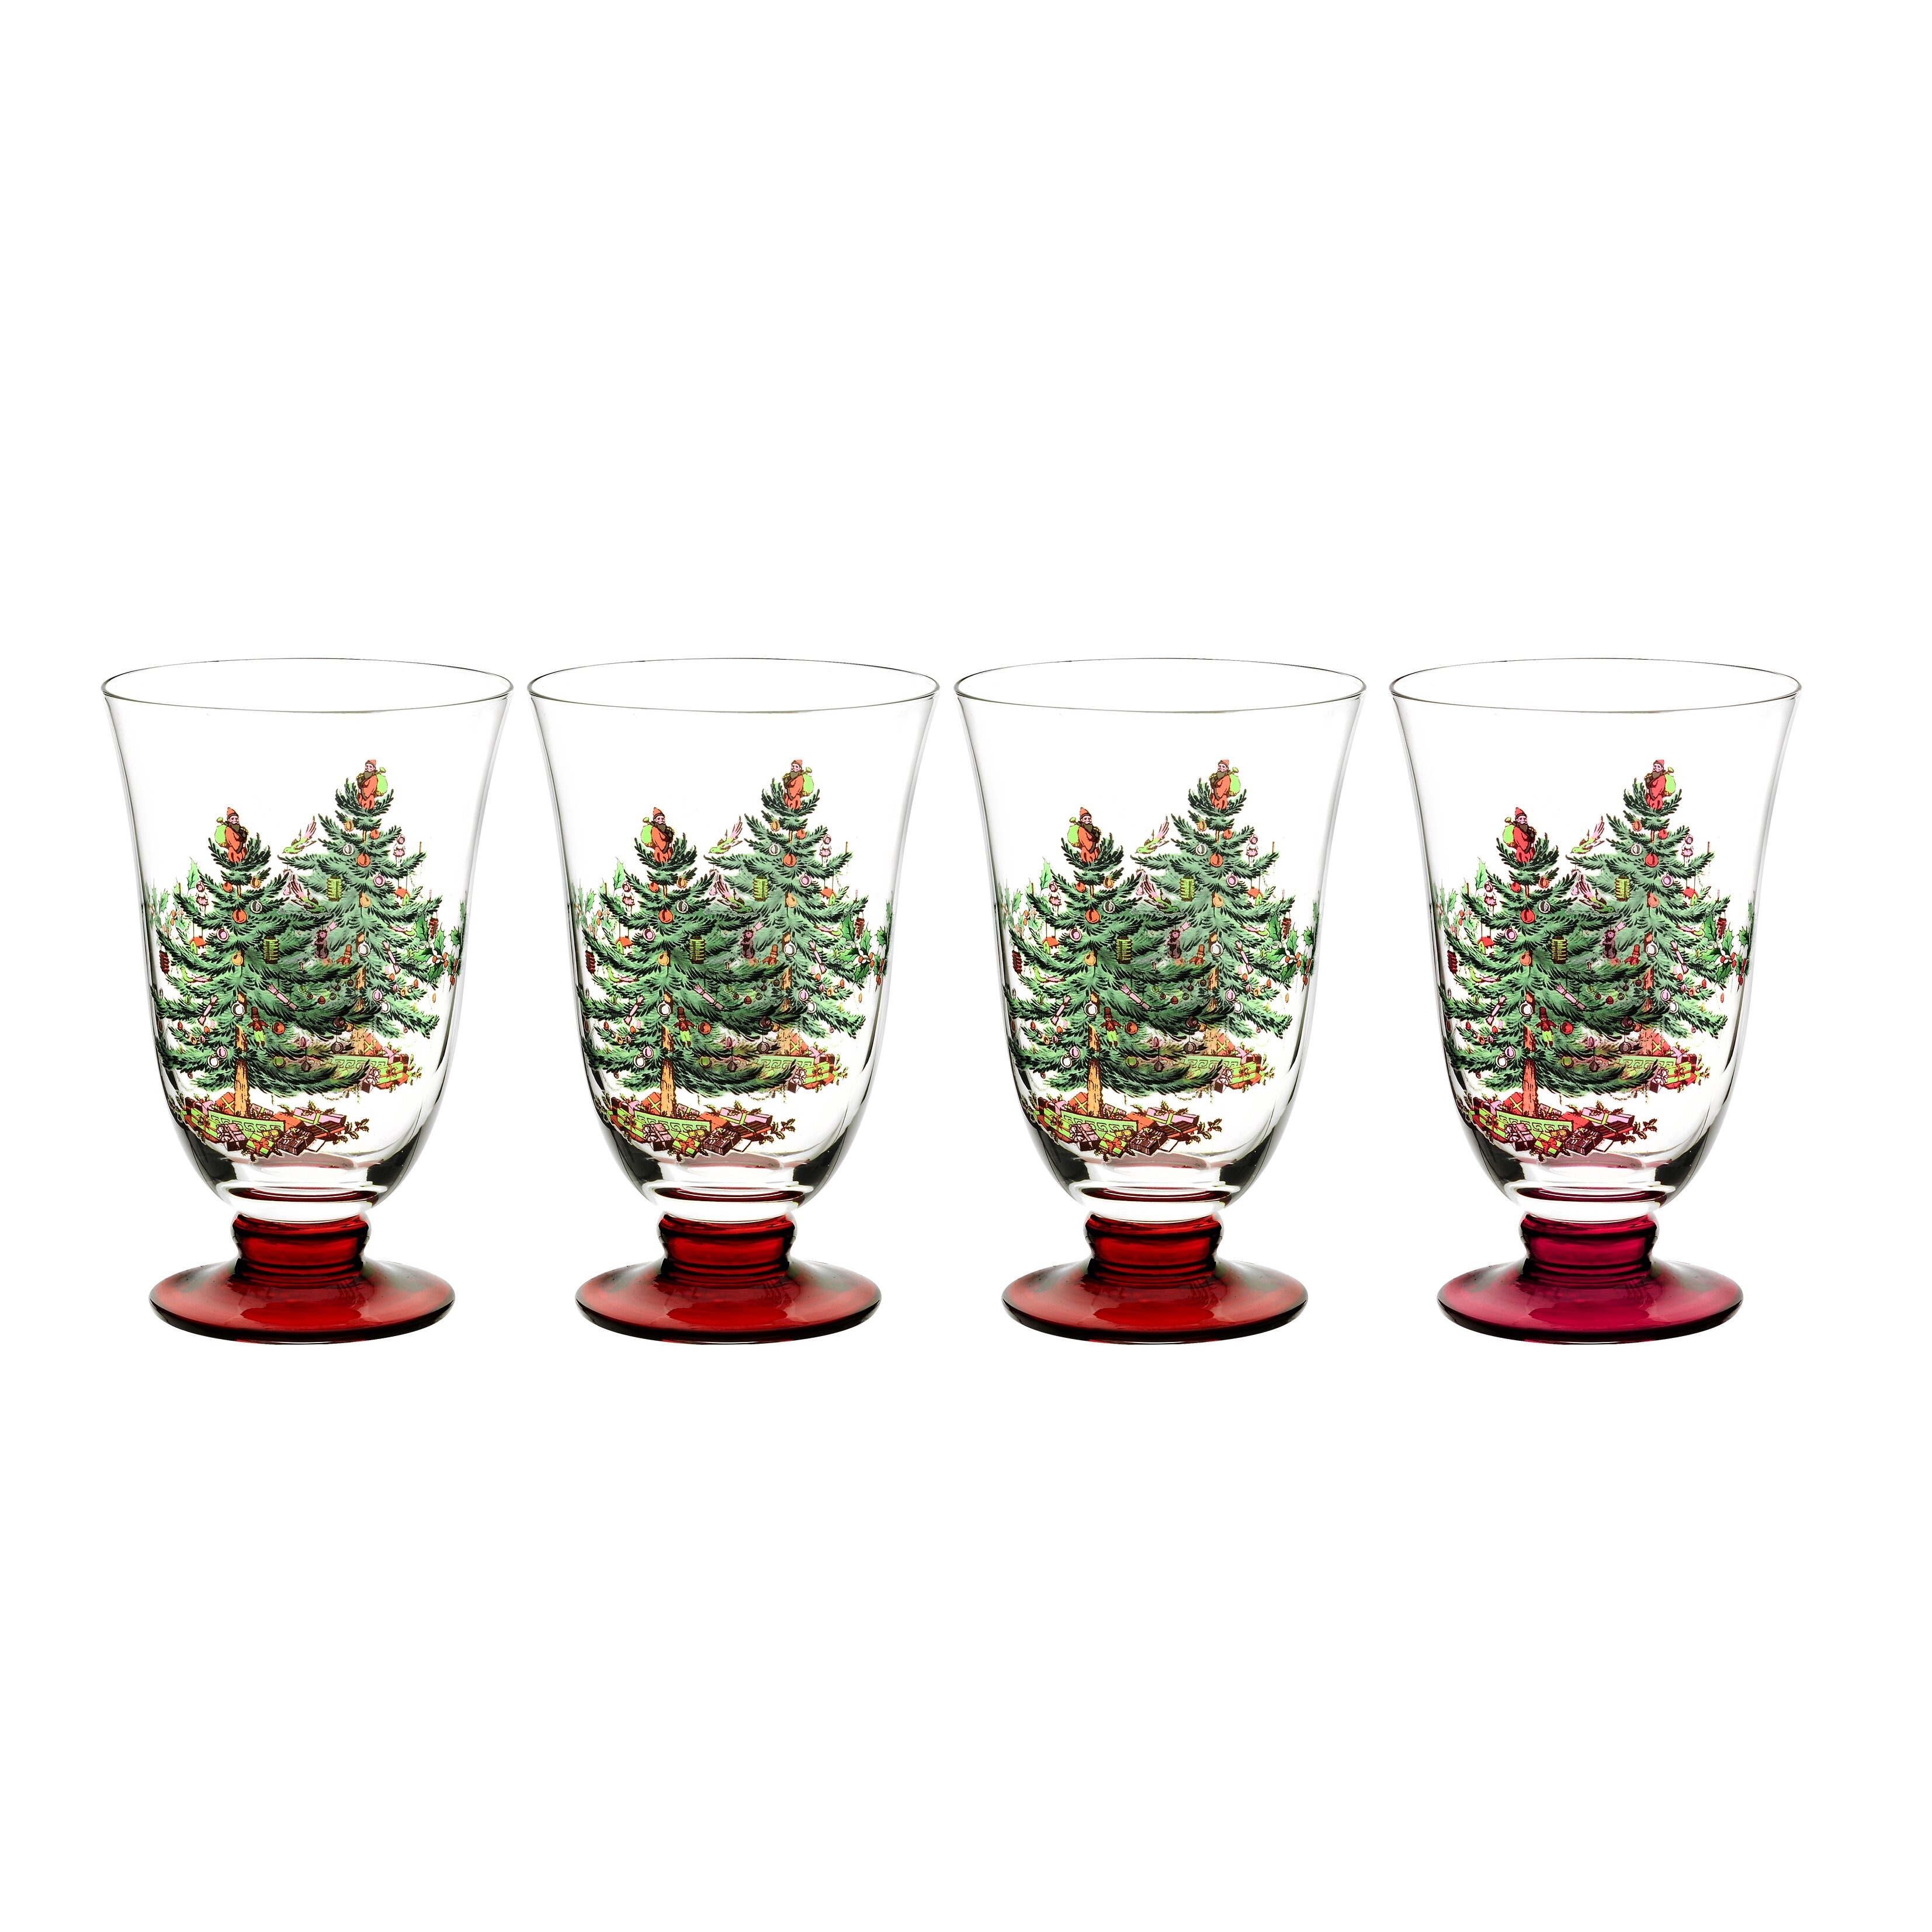 Spode christmas tree glass footed all purpose reviews for Holiday stemware